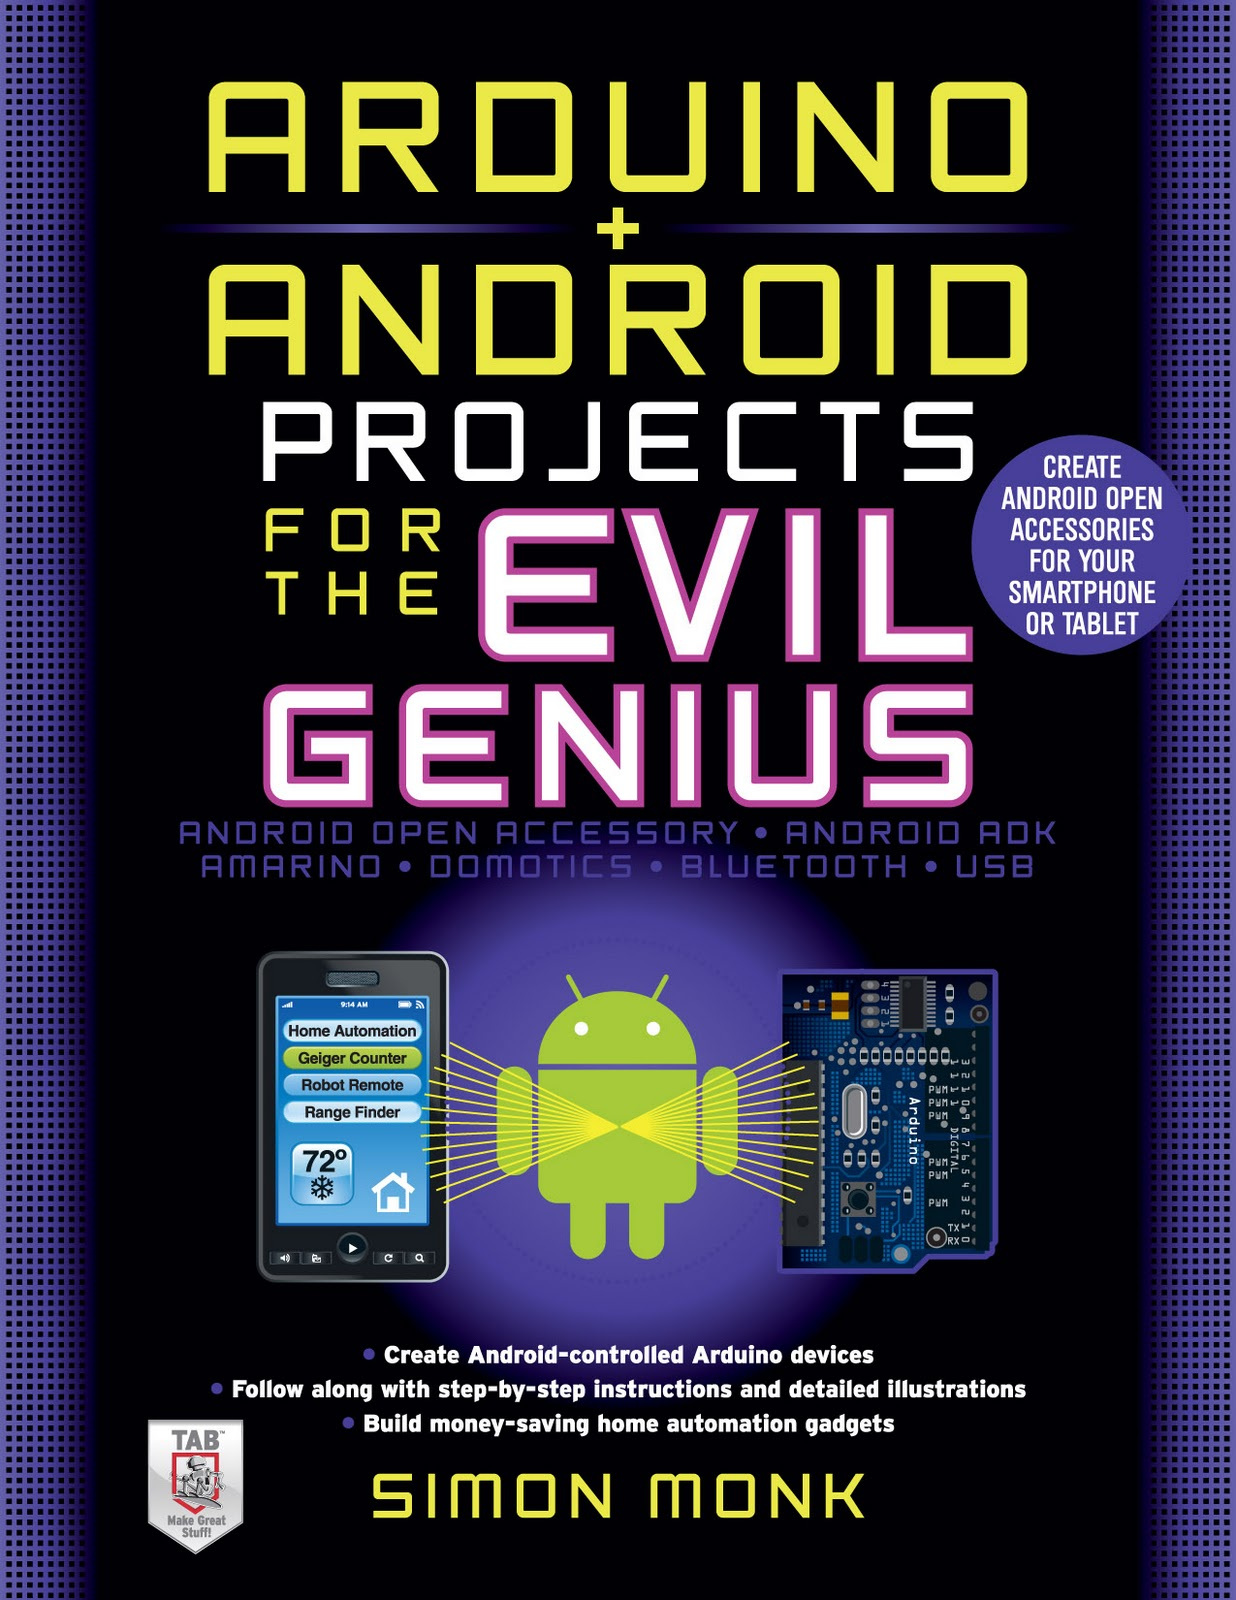 Dr  Monk's DIY Electronics Blog: Arduino + Android Projects